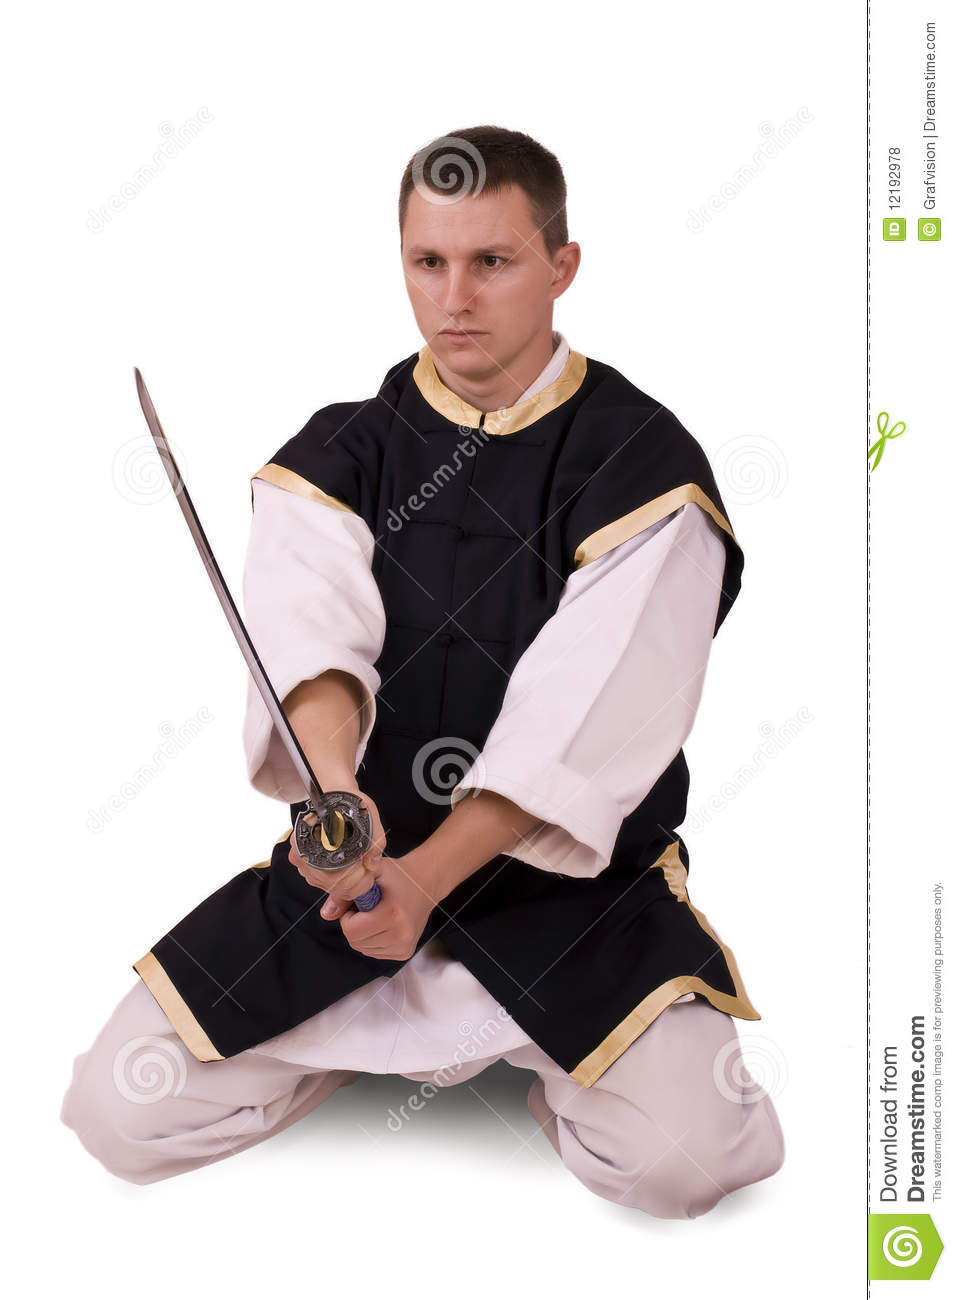 Guy with japanese sword stock photo  Image of male, karate - 12192978